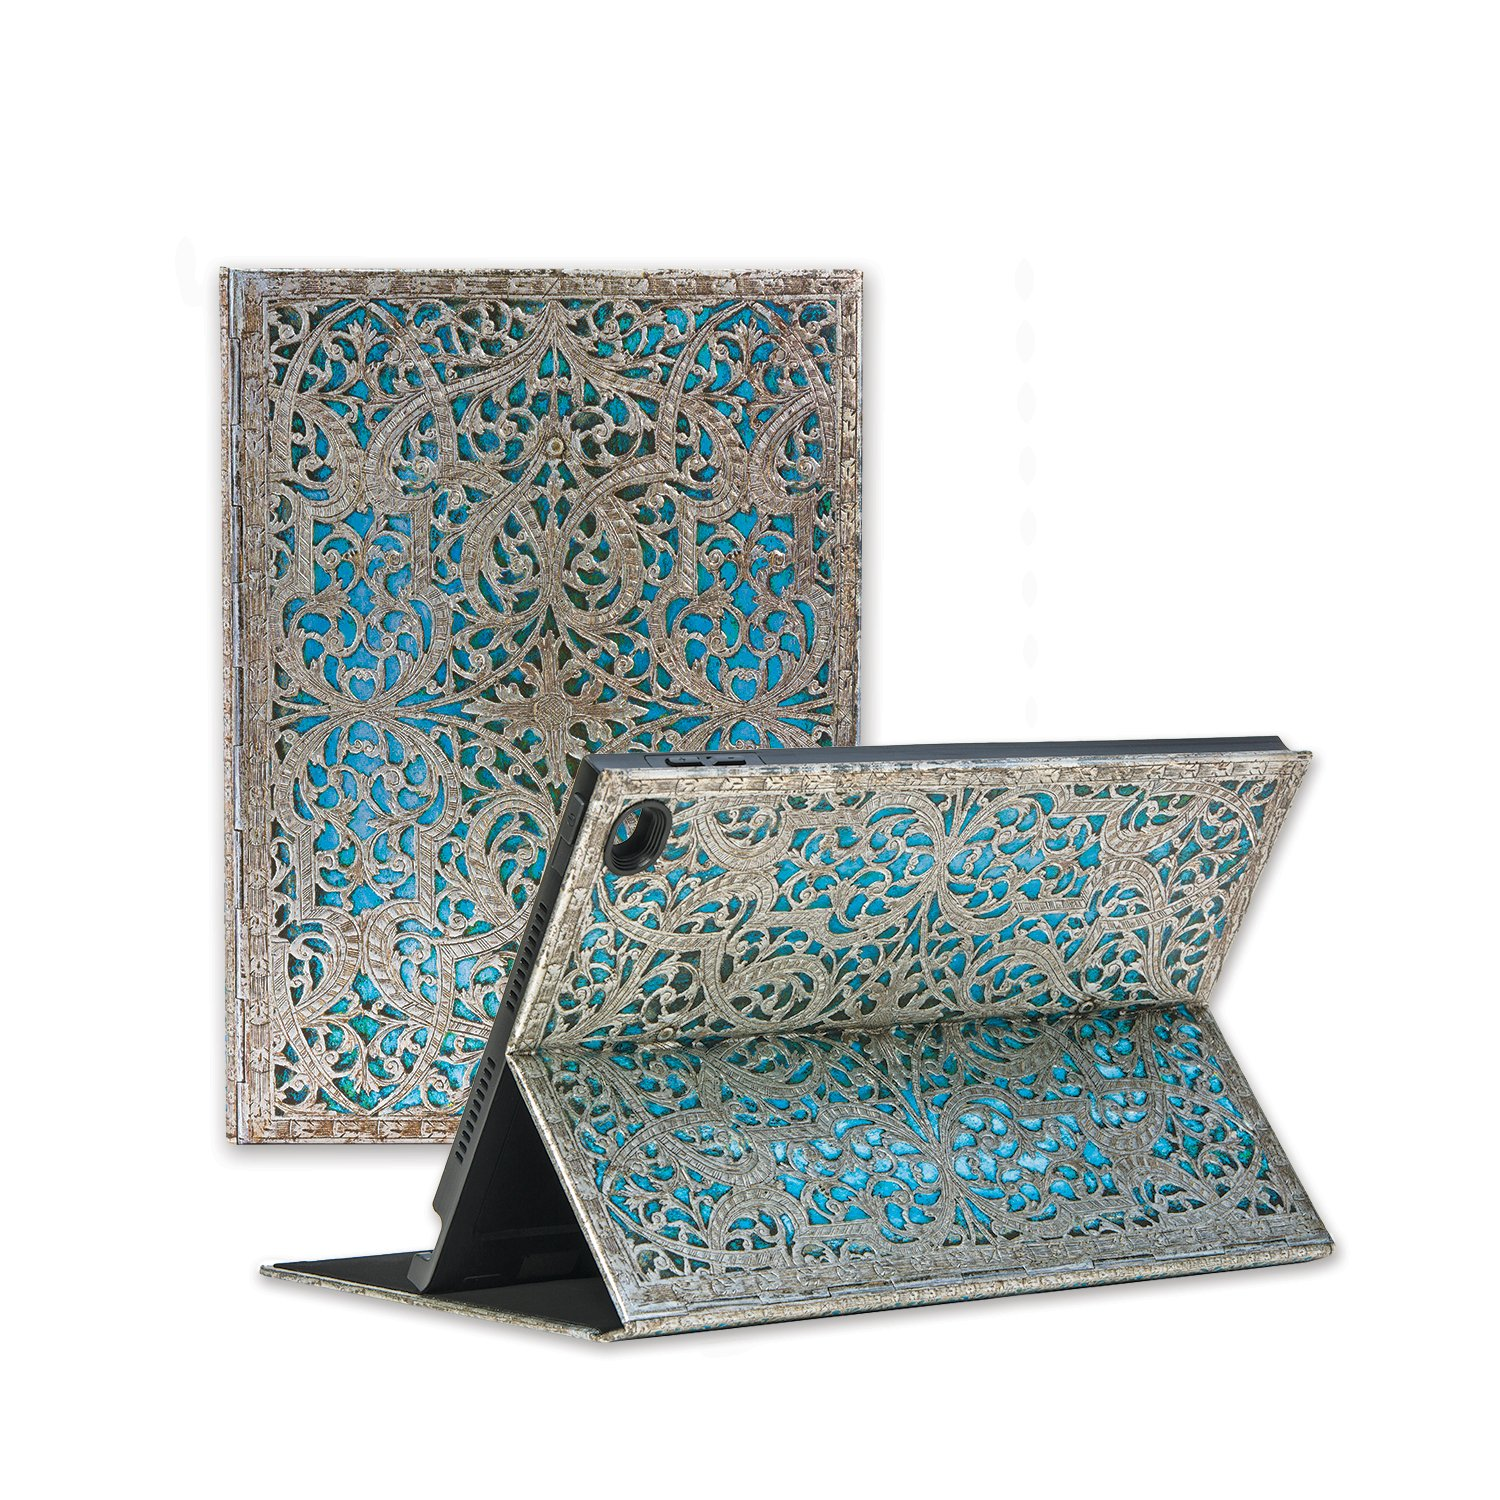 Paperblanks eXchange case for Apple iPad Pro 9.7 / Air 2, Infinite Viewing Angle Case – Maya Blue Design